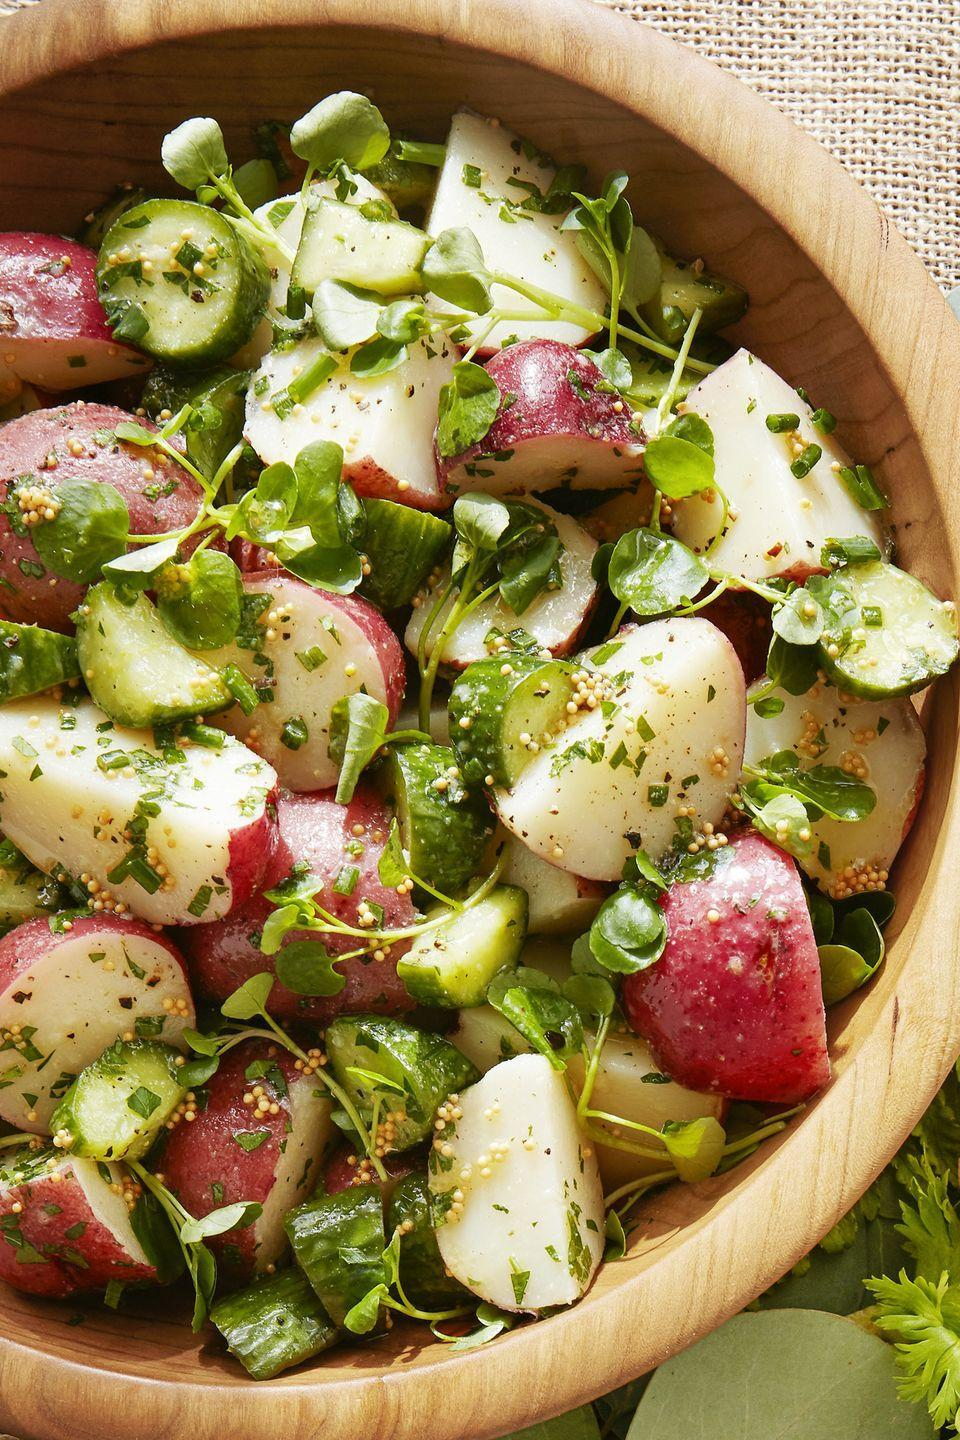 "<p>Skip the heavy egg-loaded potato salad and opt for this light, zesty version.</p><p><strong><a href=""https://www.countryliving.com/food-drinks/a19041163/tangy-potato-salad-recipe/"" rel=""nofollow noopener"" target=""_blank"" data-ylk=""slk:Get the recipe"" class=""link rapid-noclick-resp"">Get the recipe</a>.</strong><br></p>"